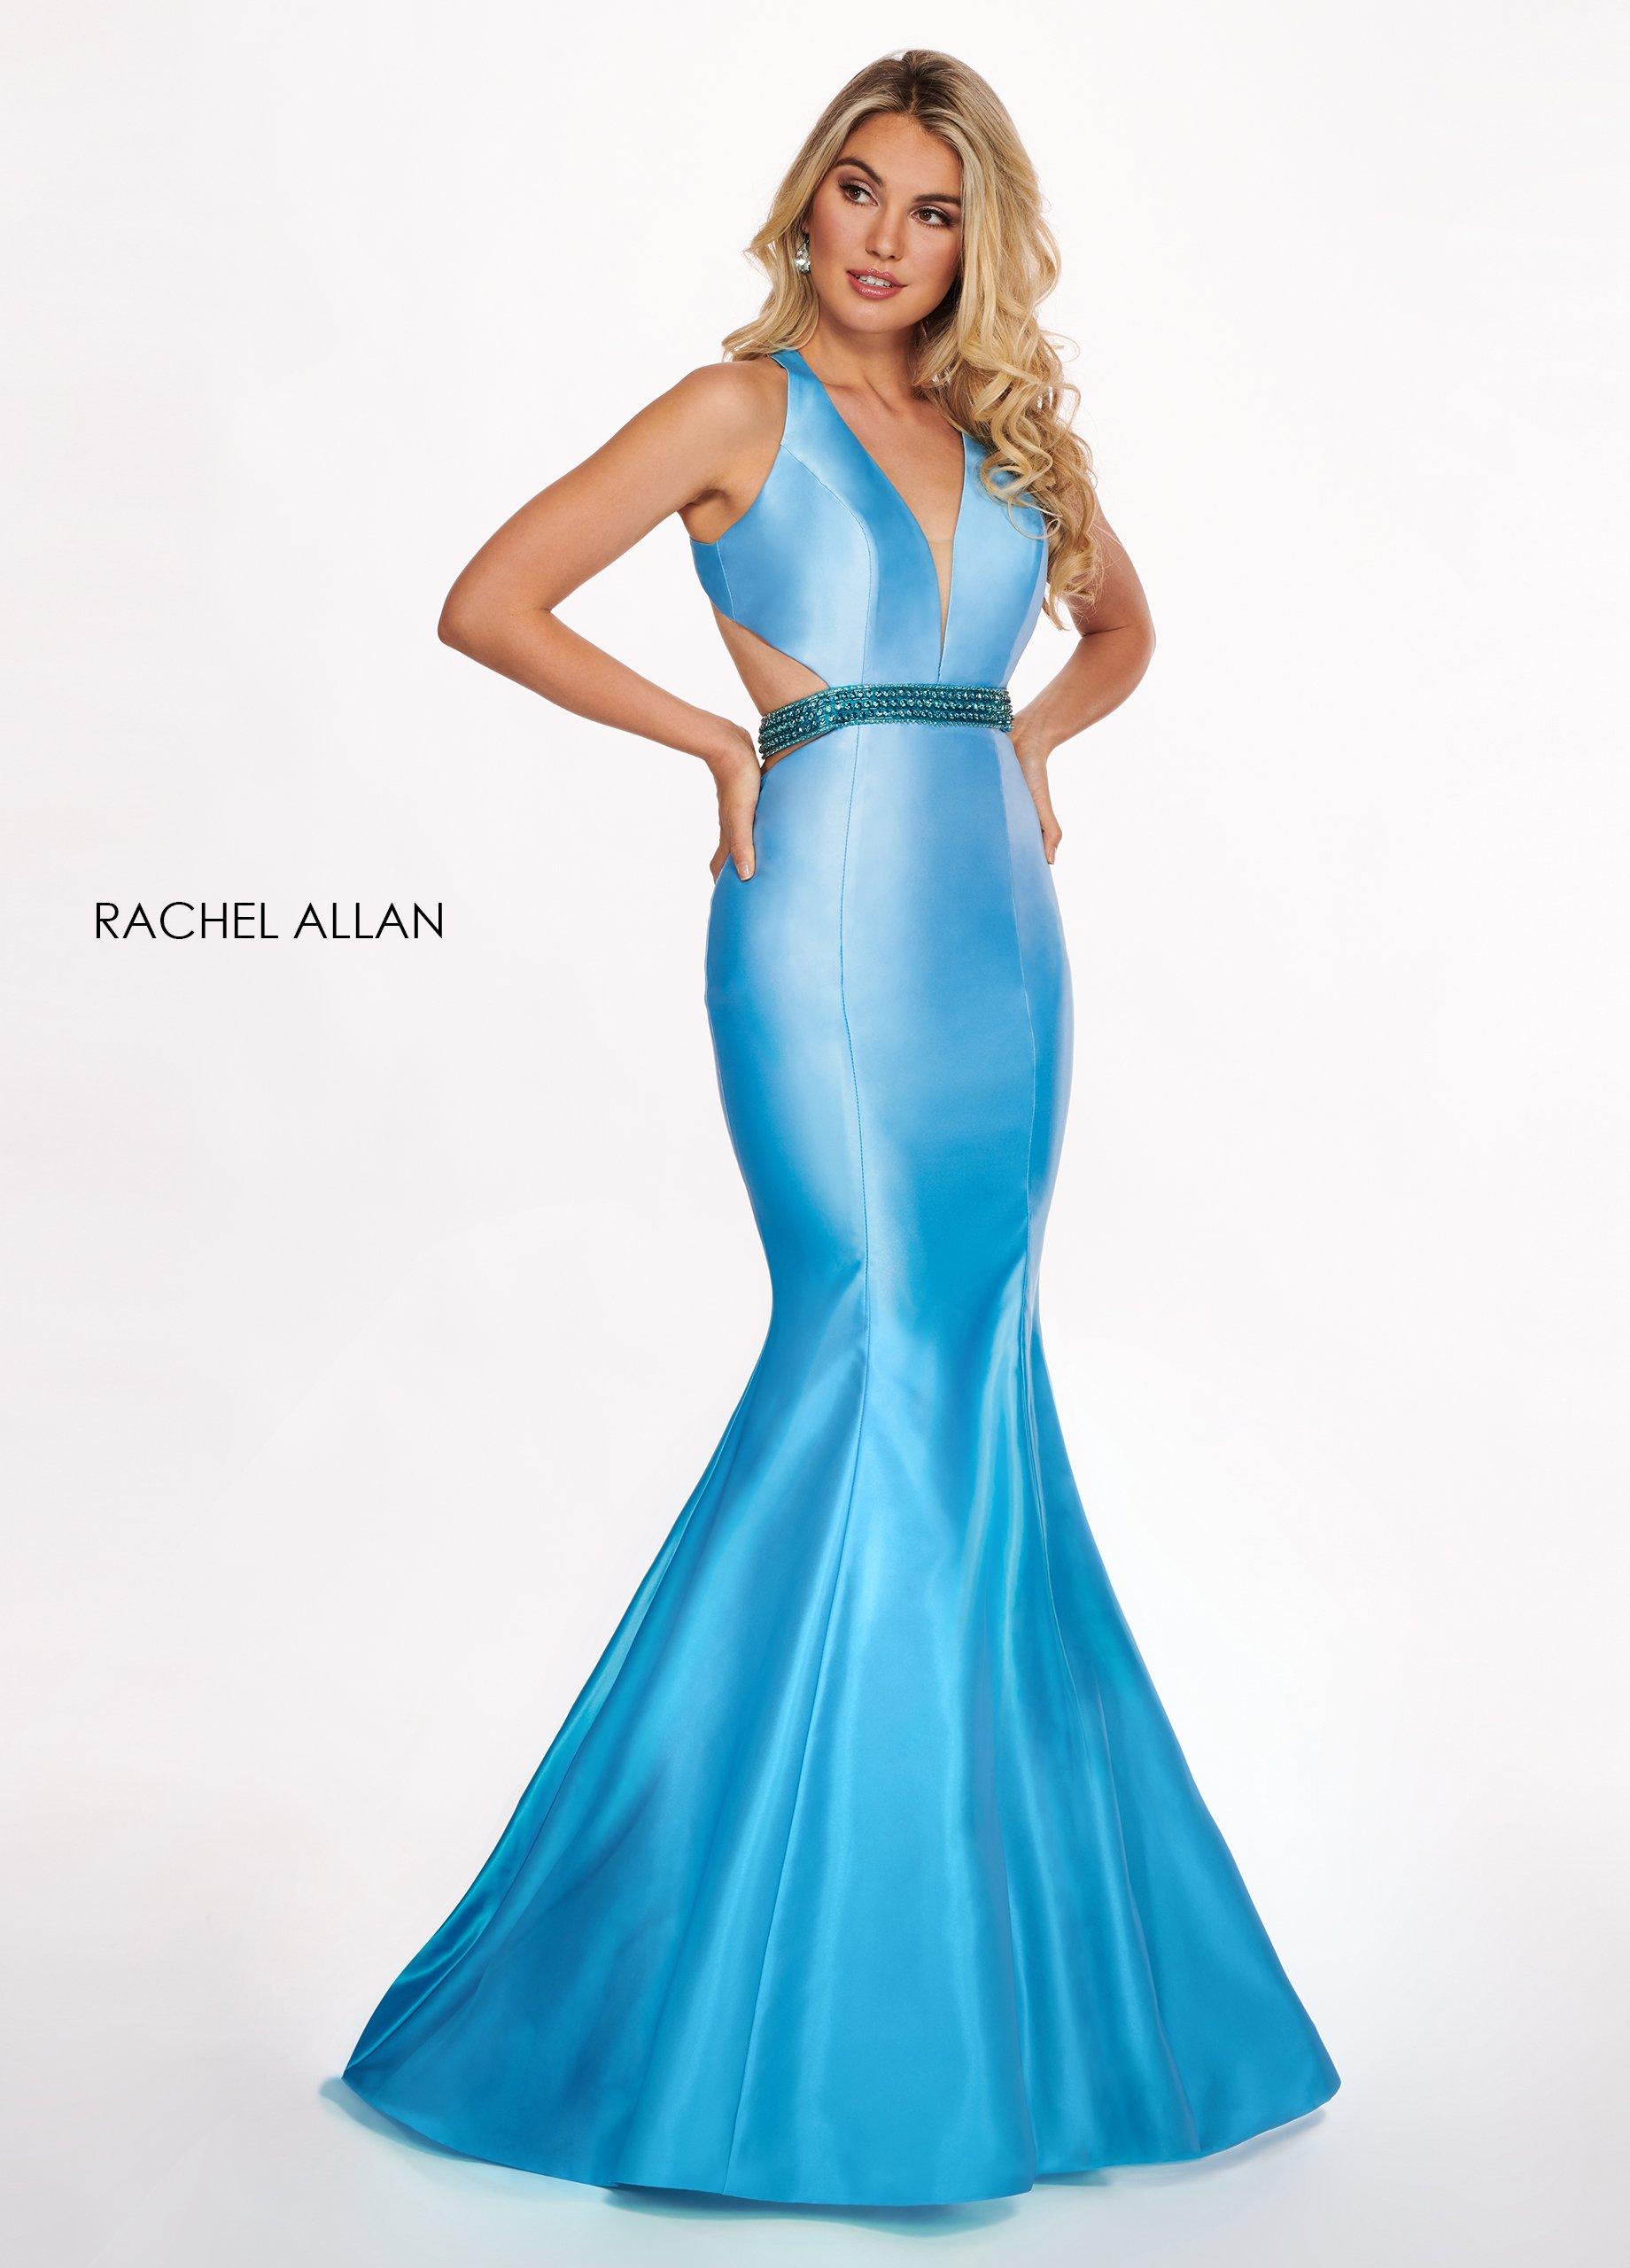 Halter Mermaid Prom Dresses in Turquoise Color